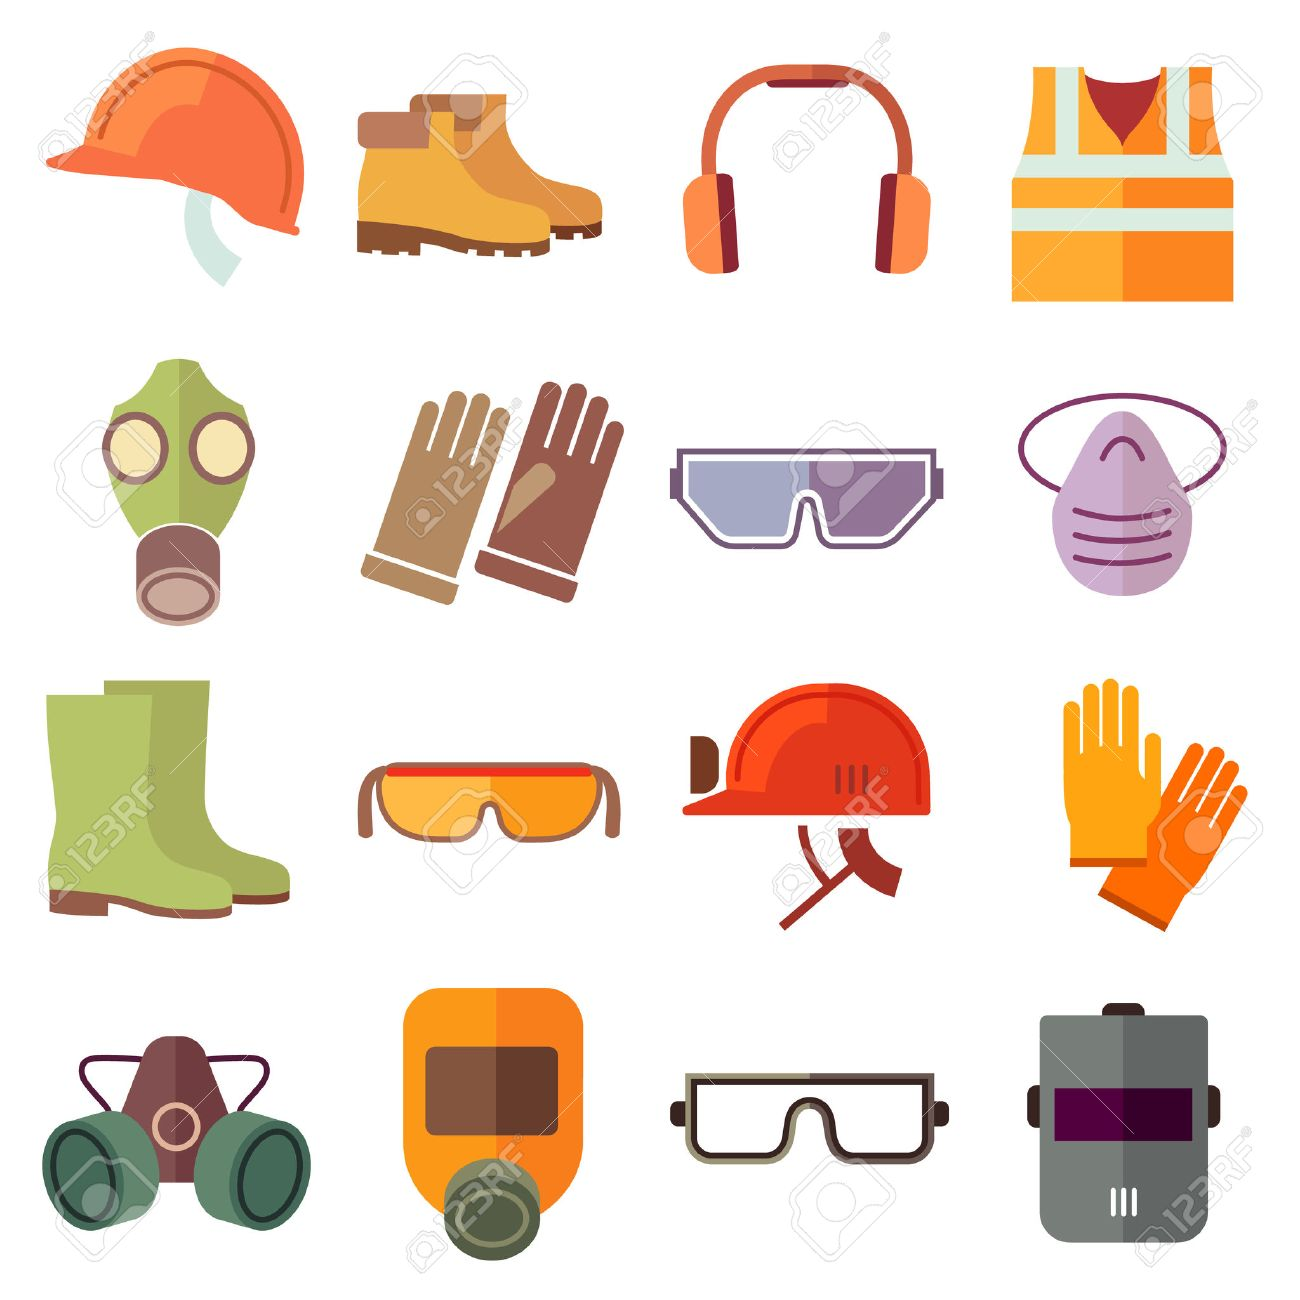 Flat job safety equipment vector icons set. Safety icon, helmet equipment, job industrial, safety headgear and protection boot illustration - 51707030